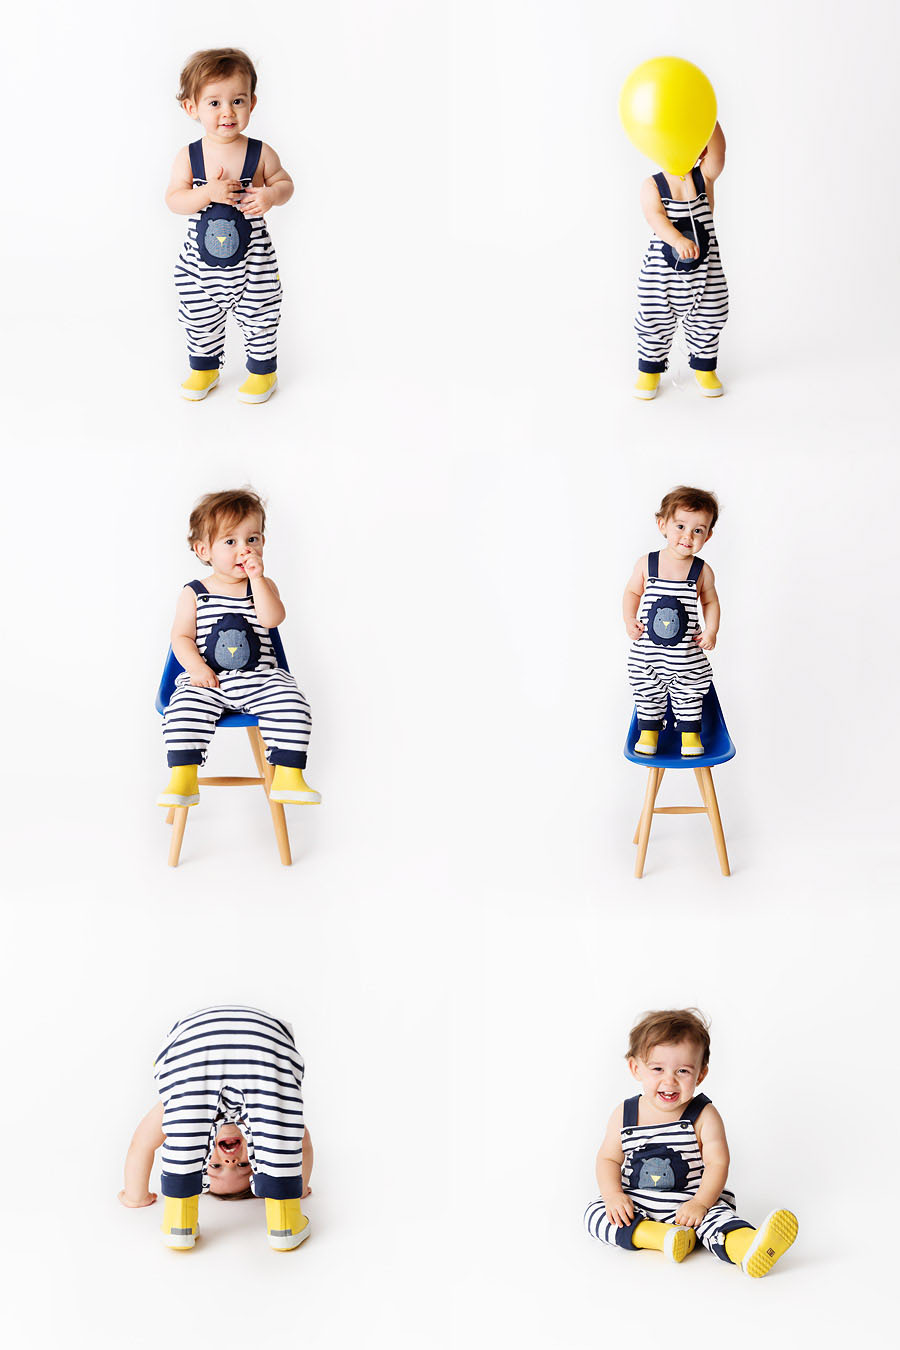 Toddler in striped rompers playing with yellow balloon by baby fashion photographer Lisa Tichane